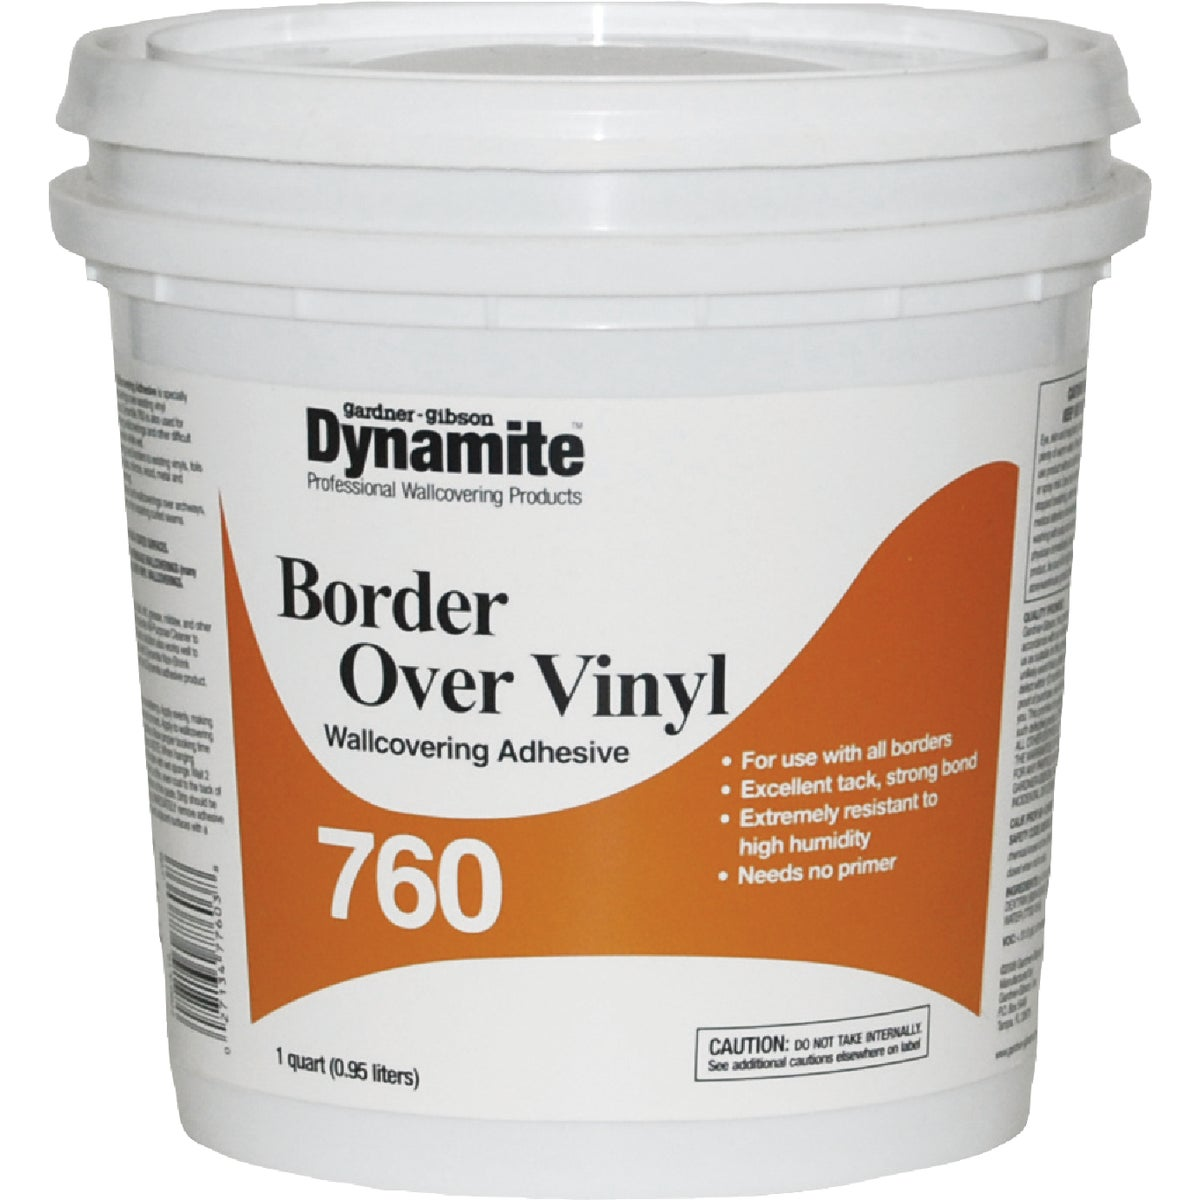 QT BORDER ADHESIVE - 7760-3-16 by Gardner Gibson Inc